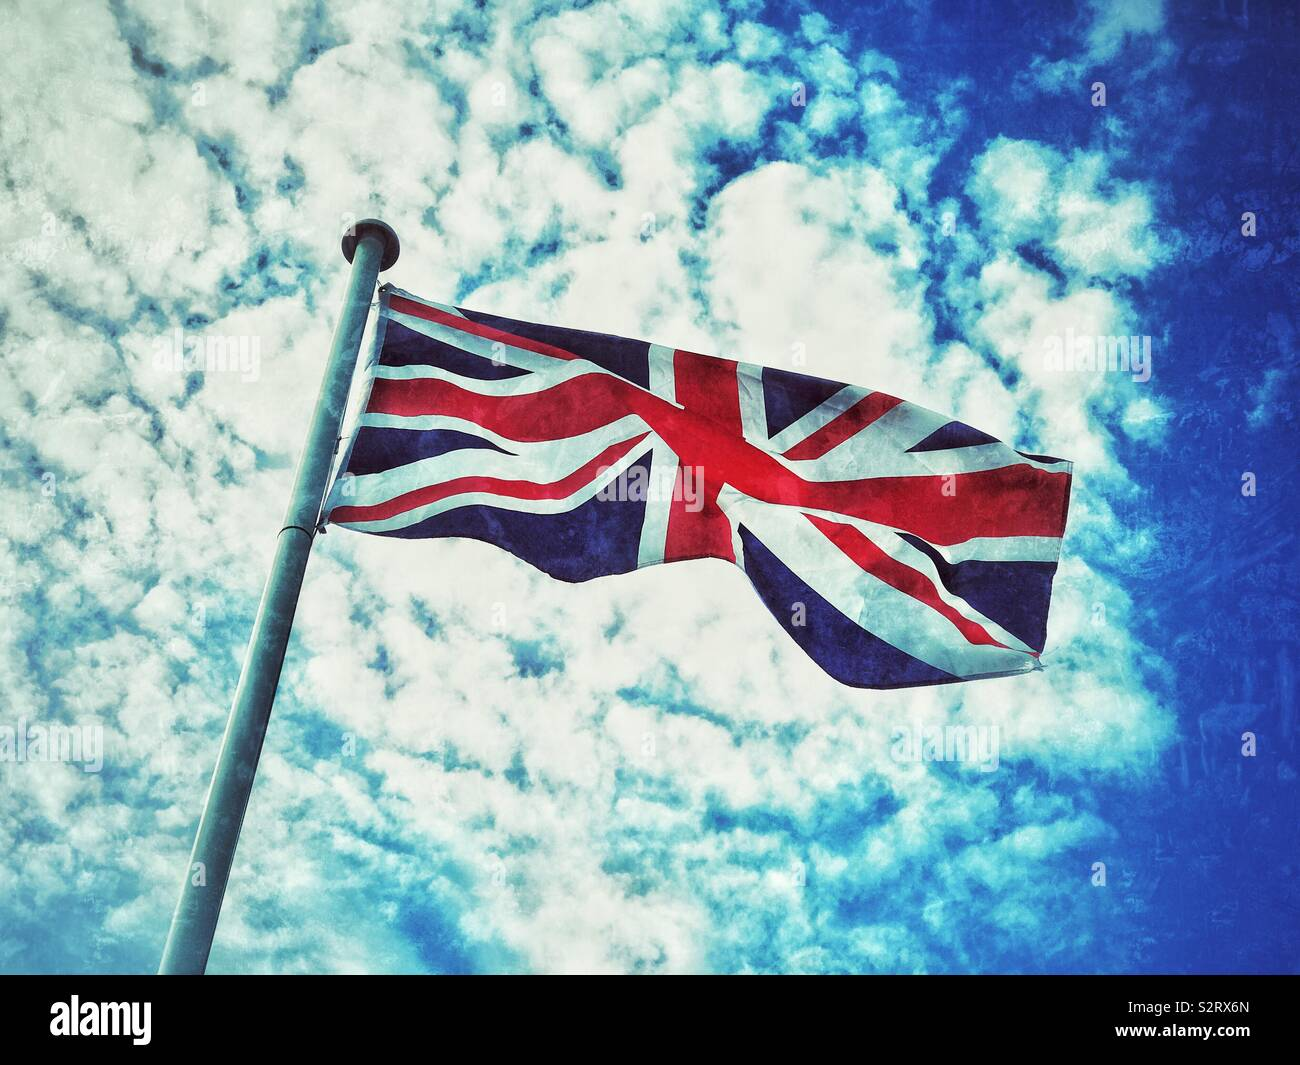 The Union Jack flag flies in the summer sunshine. The flag of The United Kingdom is sometimes referred to as The Union Flag. Photo Credit - © COLIN HOSKINS. - Stock Image